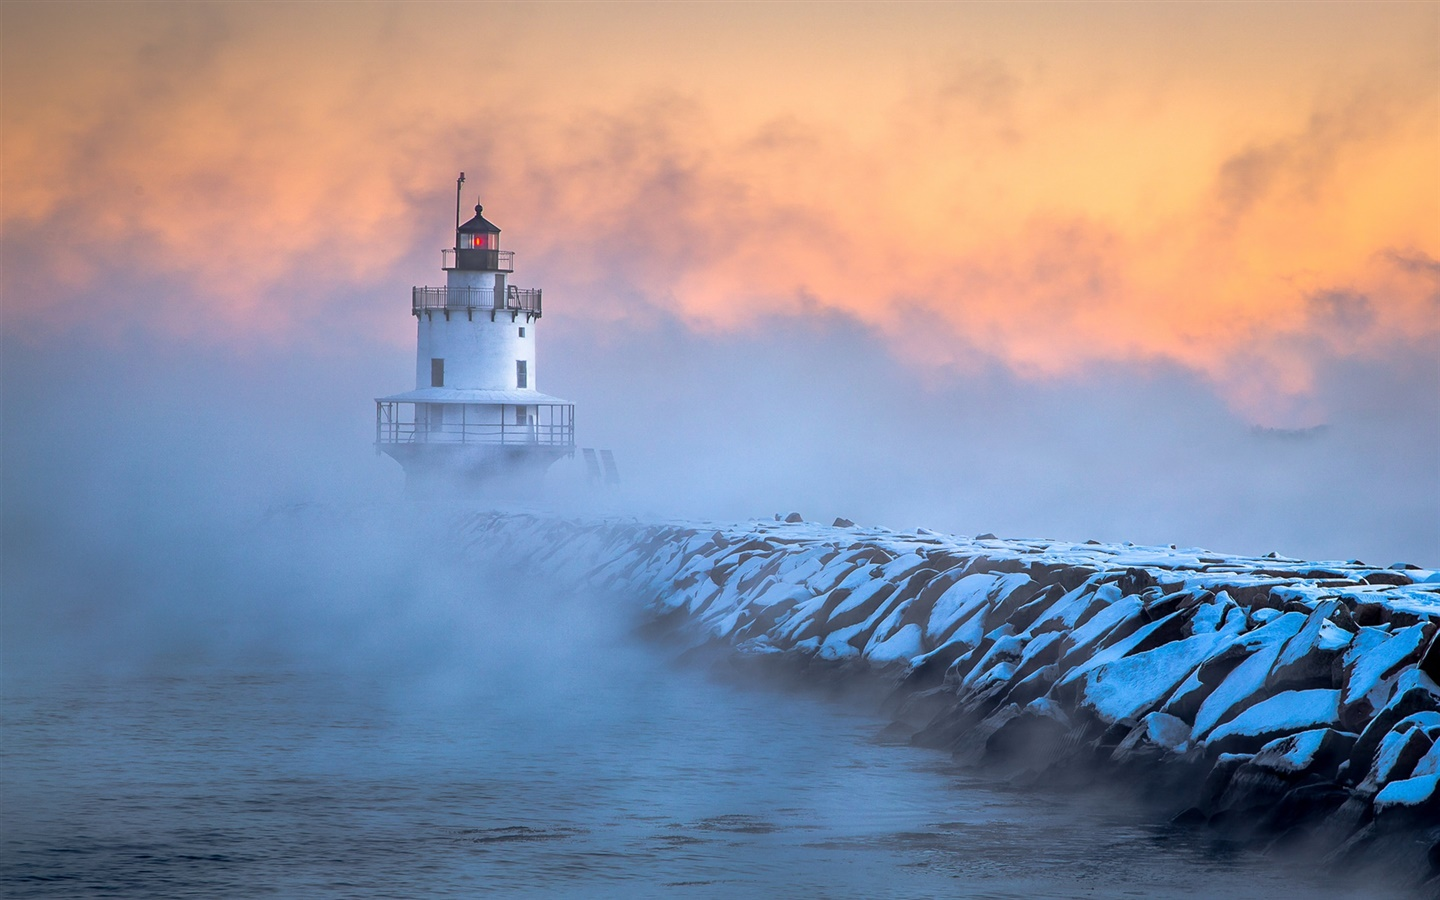 South Portland, Maine, lighthouse, frost, dawn, fog 1440x900 wallpaper.